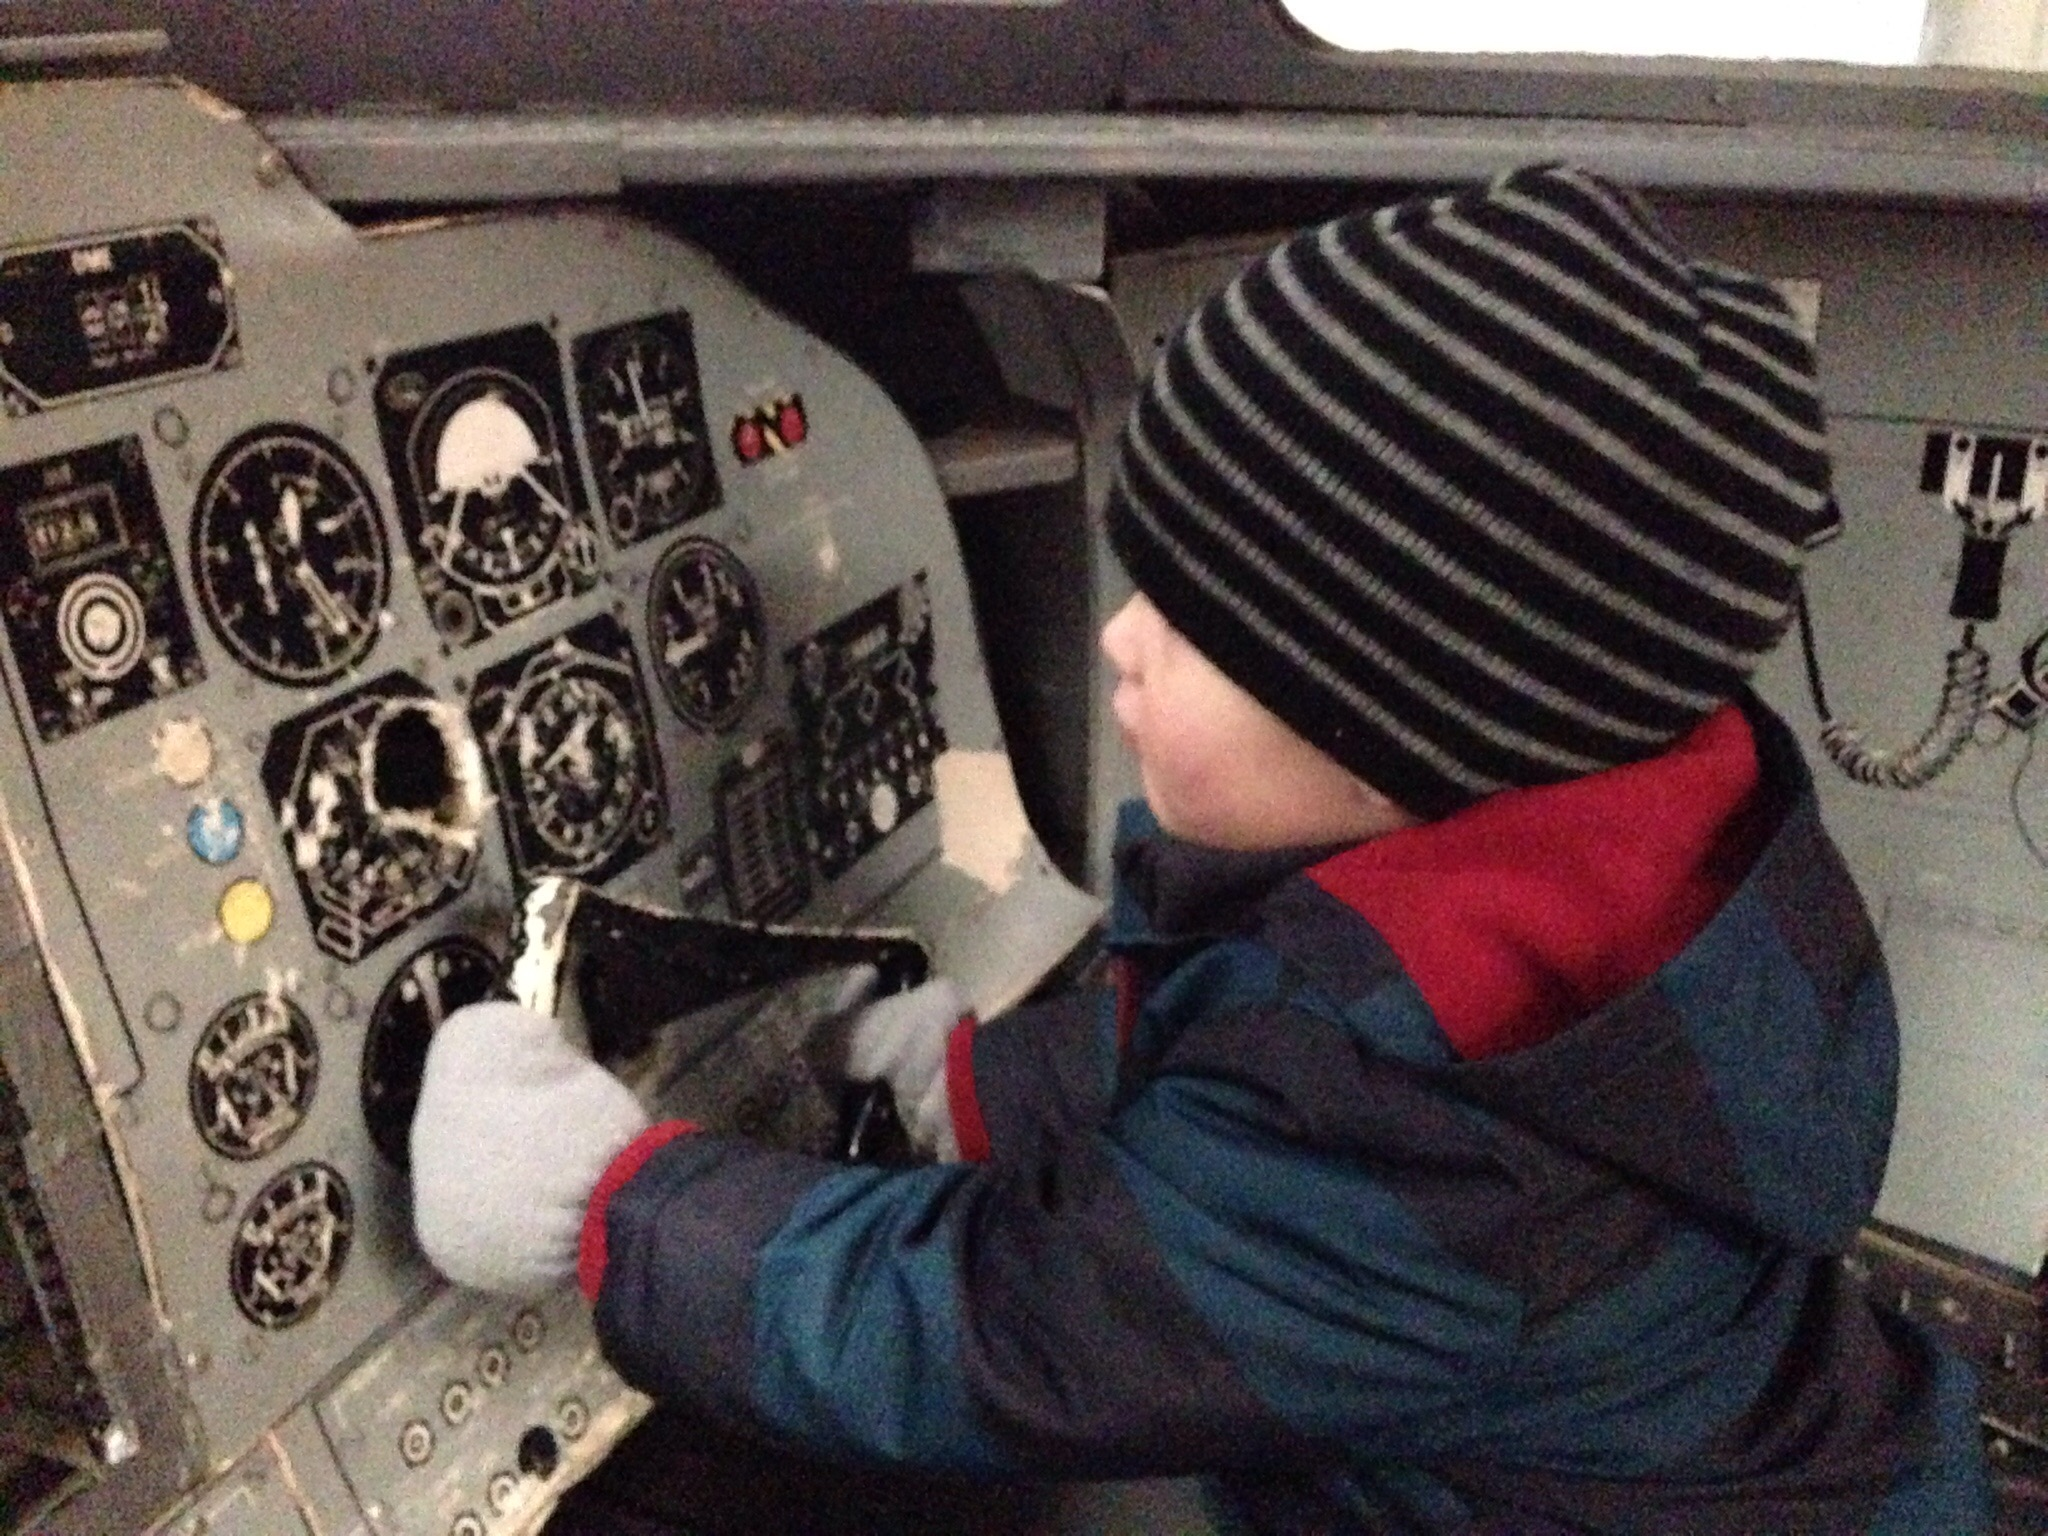 cockpit play in plane nose at sunderland air museum